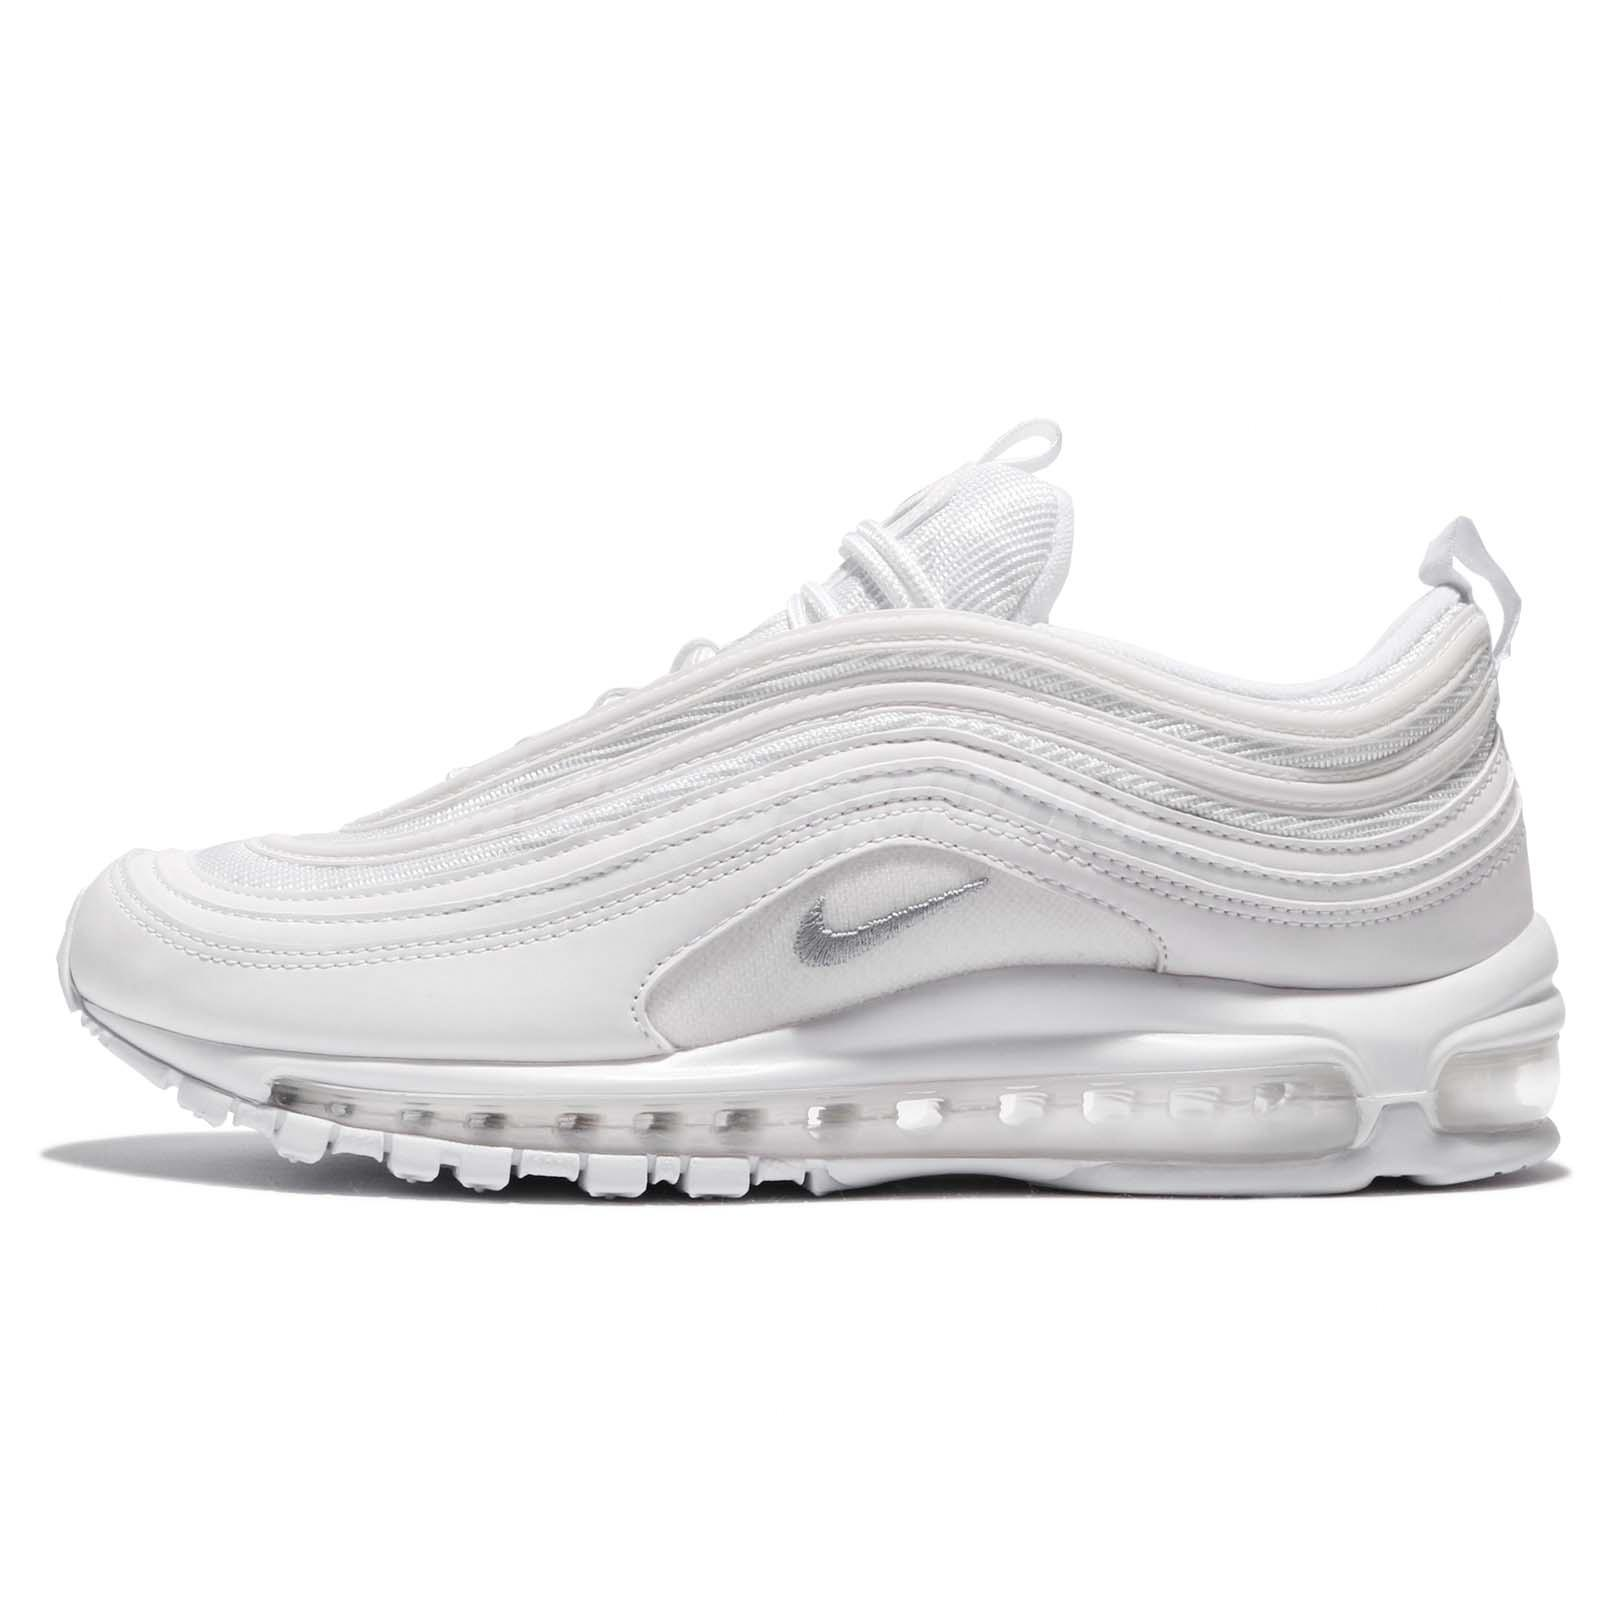 men's nike air max 97 og running shoes